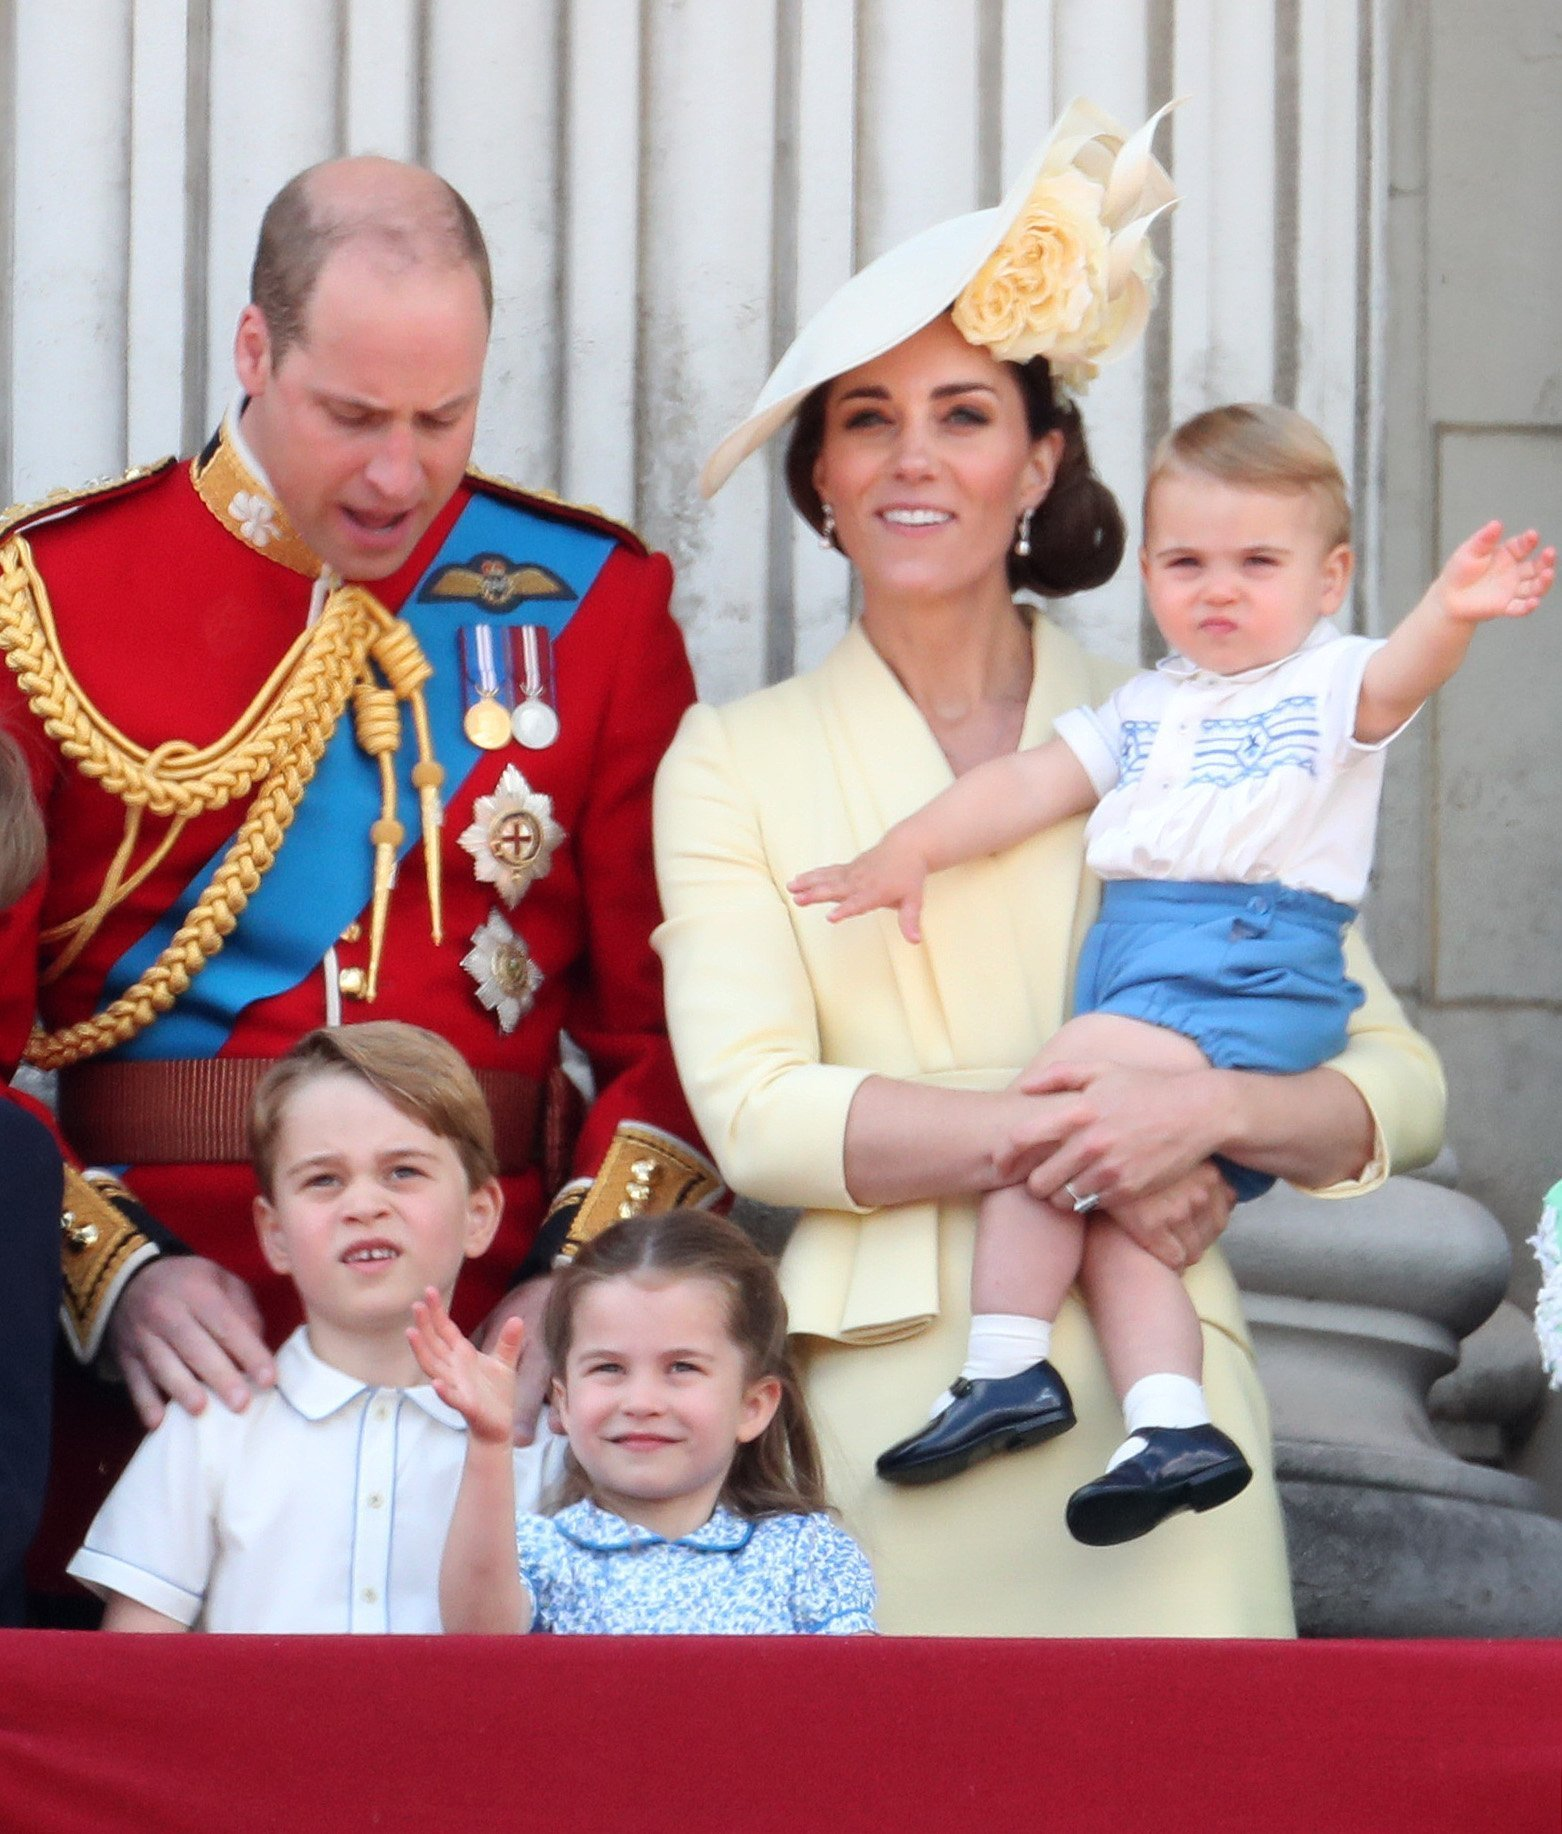 Prince William, Duchess Kate, Prince Louis, Princess Charlotte, and Prince George at Trooping The Colour, the Queen's annual birthday parade, on June 08, 2019 in London, England | Photo: Getty Images